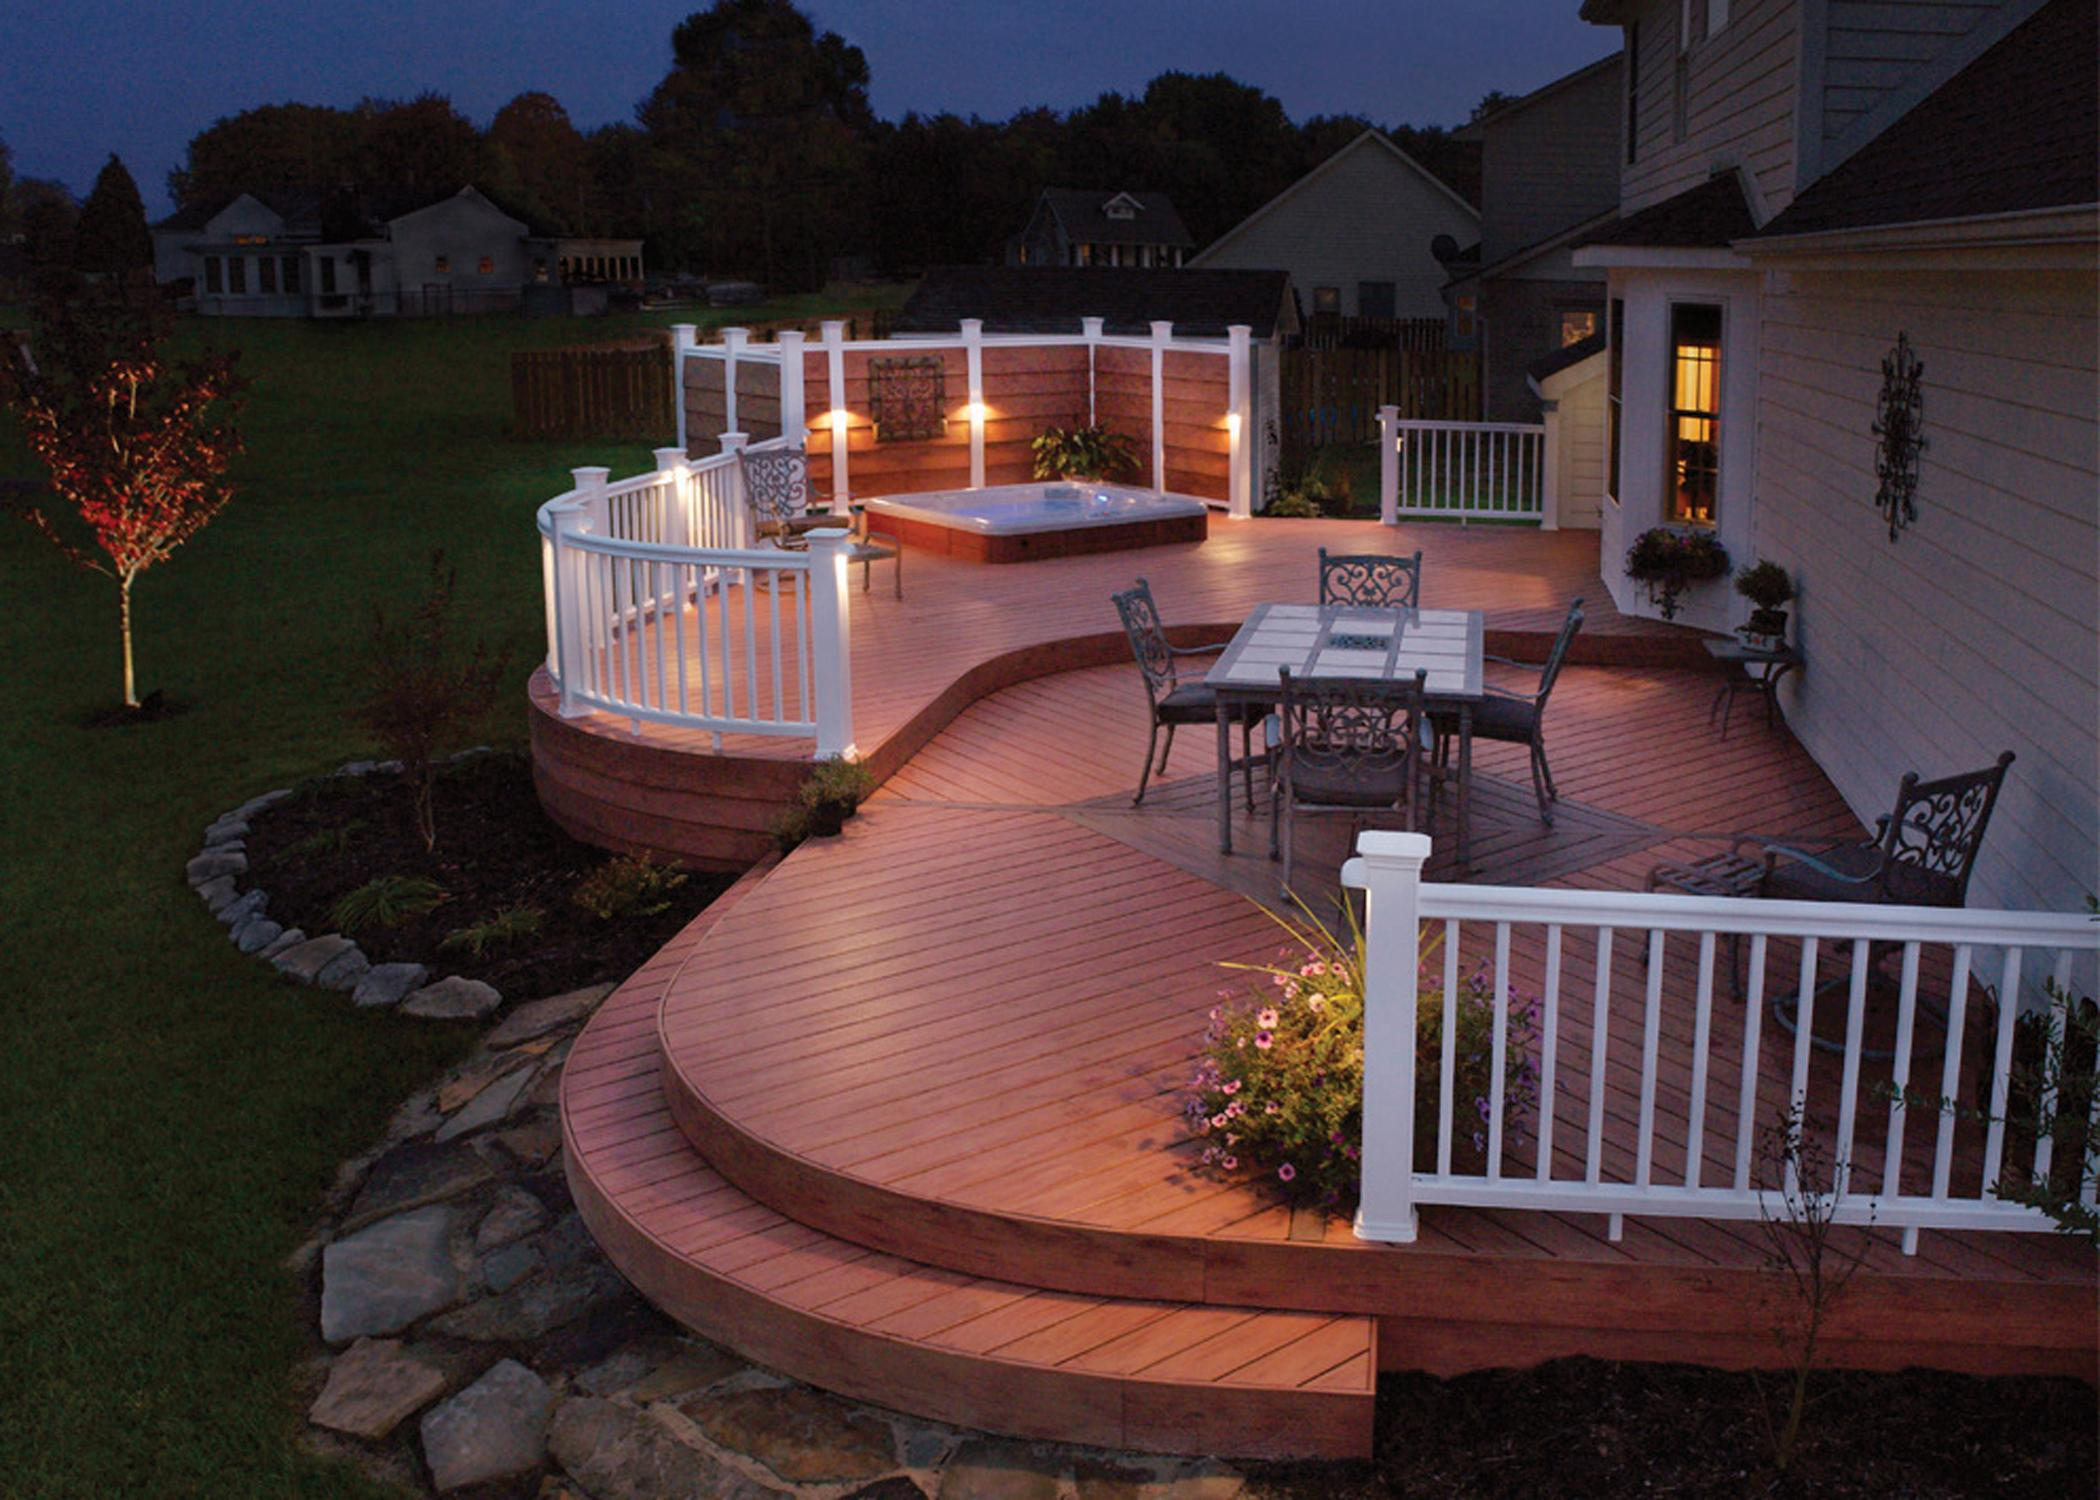 Deck and patio lights-Sarasota FL Outdoor Lighting Installers-We Offer Outdoor Lighting Services, Landscape Lighting, Low Voltage Lighting, Outdoor LED landscape Lighting, Holiday Lighting, Christmas Lighting, Tree Lighting, Canopy Lighting, Residential outdoor Lighting, Commercial outdoor Lighting, Safety Lighting, Path and Garden Lighting, Mini lights and flood lights, Landscape Lighting installation, Outdoor spot lights, Outdoor LED garden Lighting, Dock Lighting, Accent lights, Deck and patio lights, Security lights, Underwater Lighting, Tree upLighting, Outdoor Lighting repair services, and more.